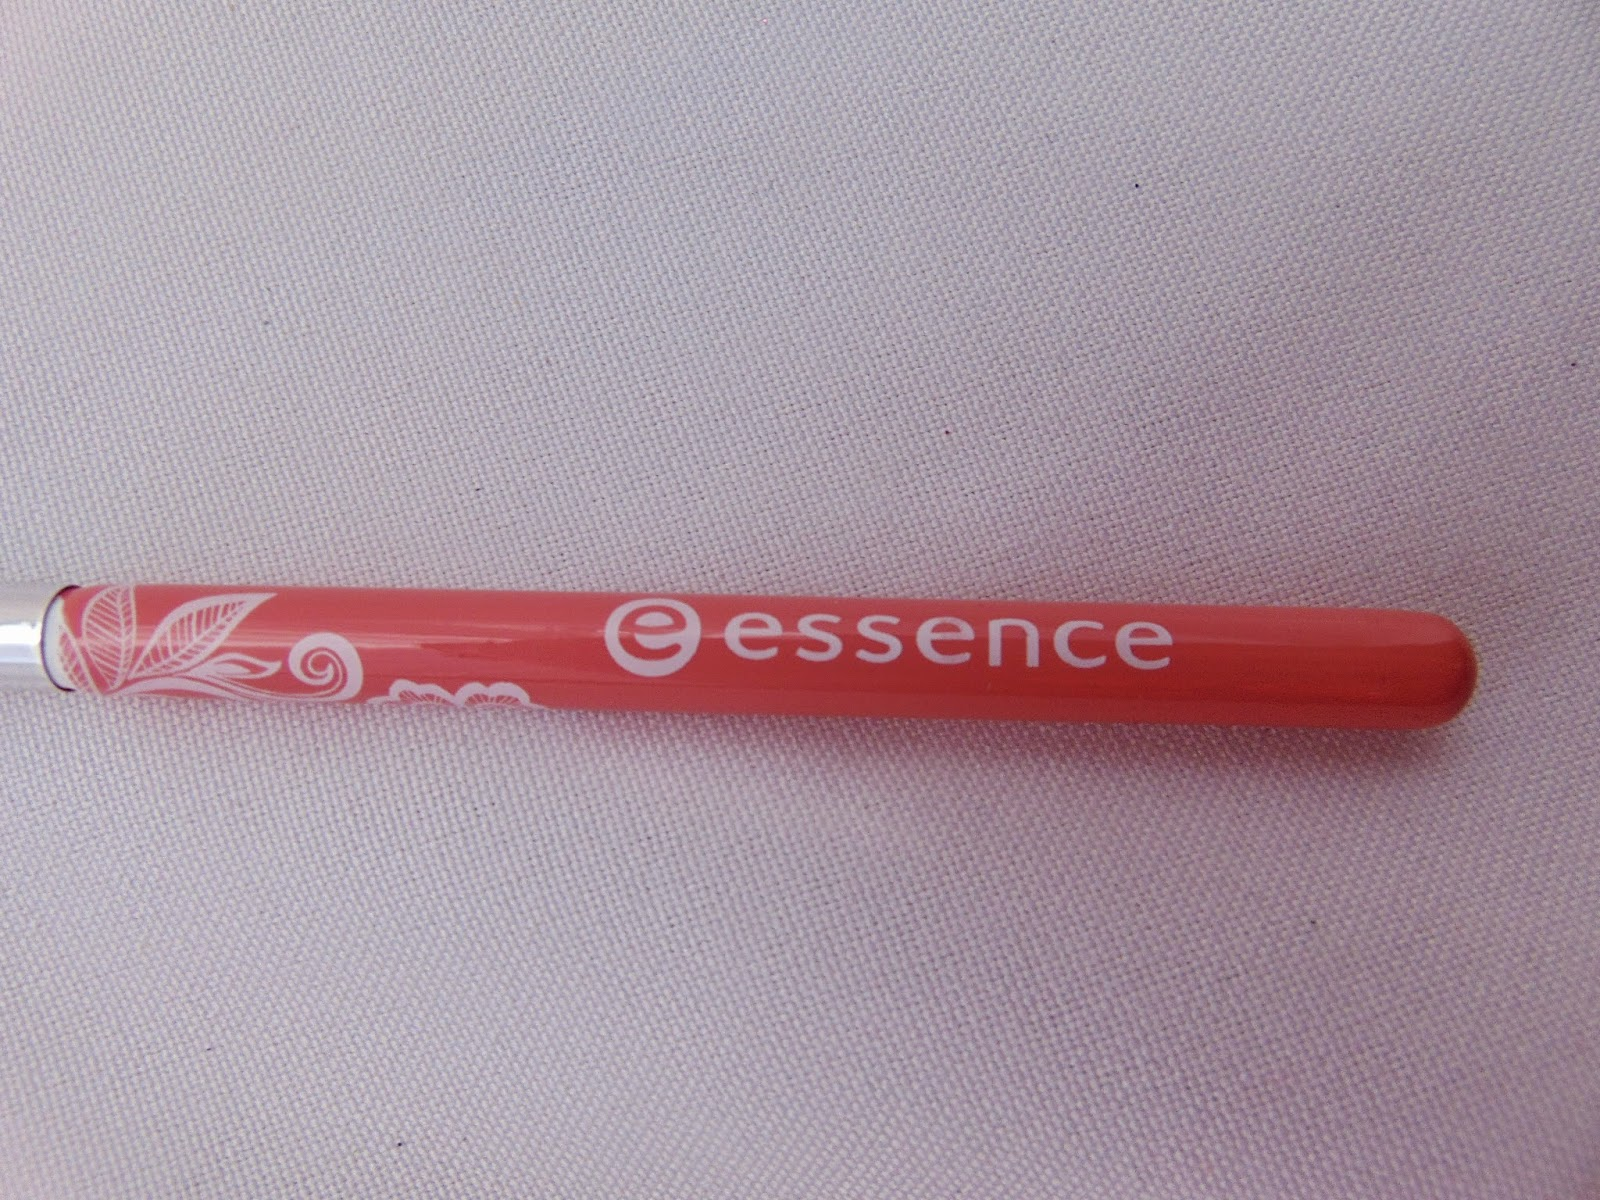 Essence: Neue Pinsel im floralen Design - Lip Brush - www.annitschkasblog.de